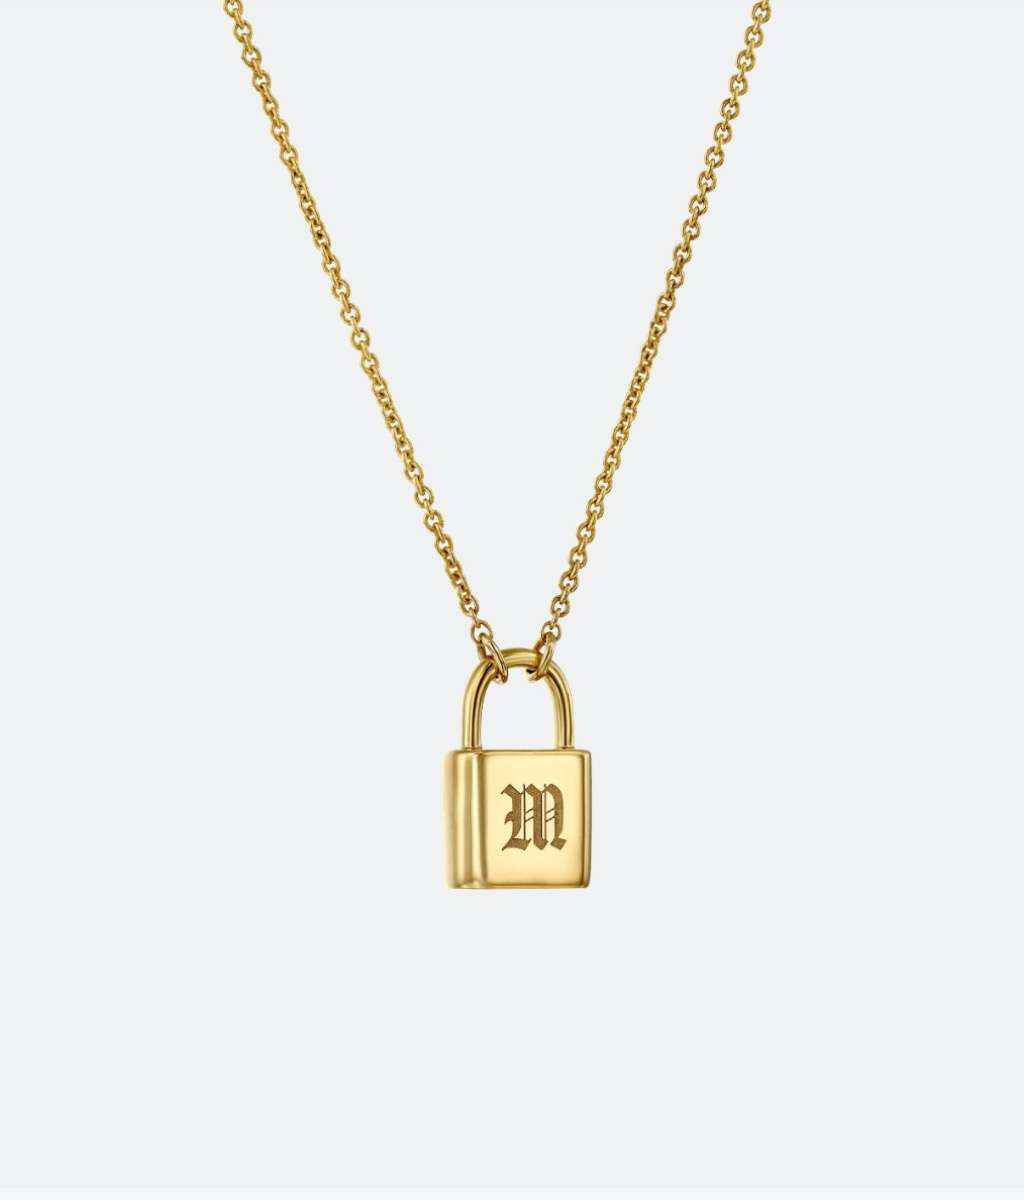 gold necklace with lock bearing the letter M on it